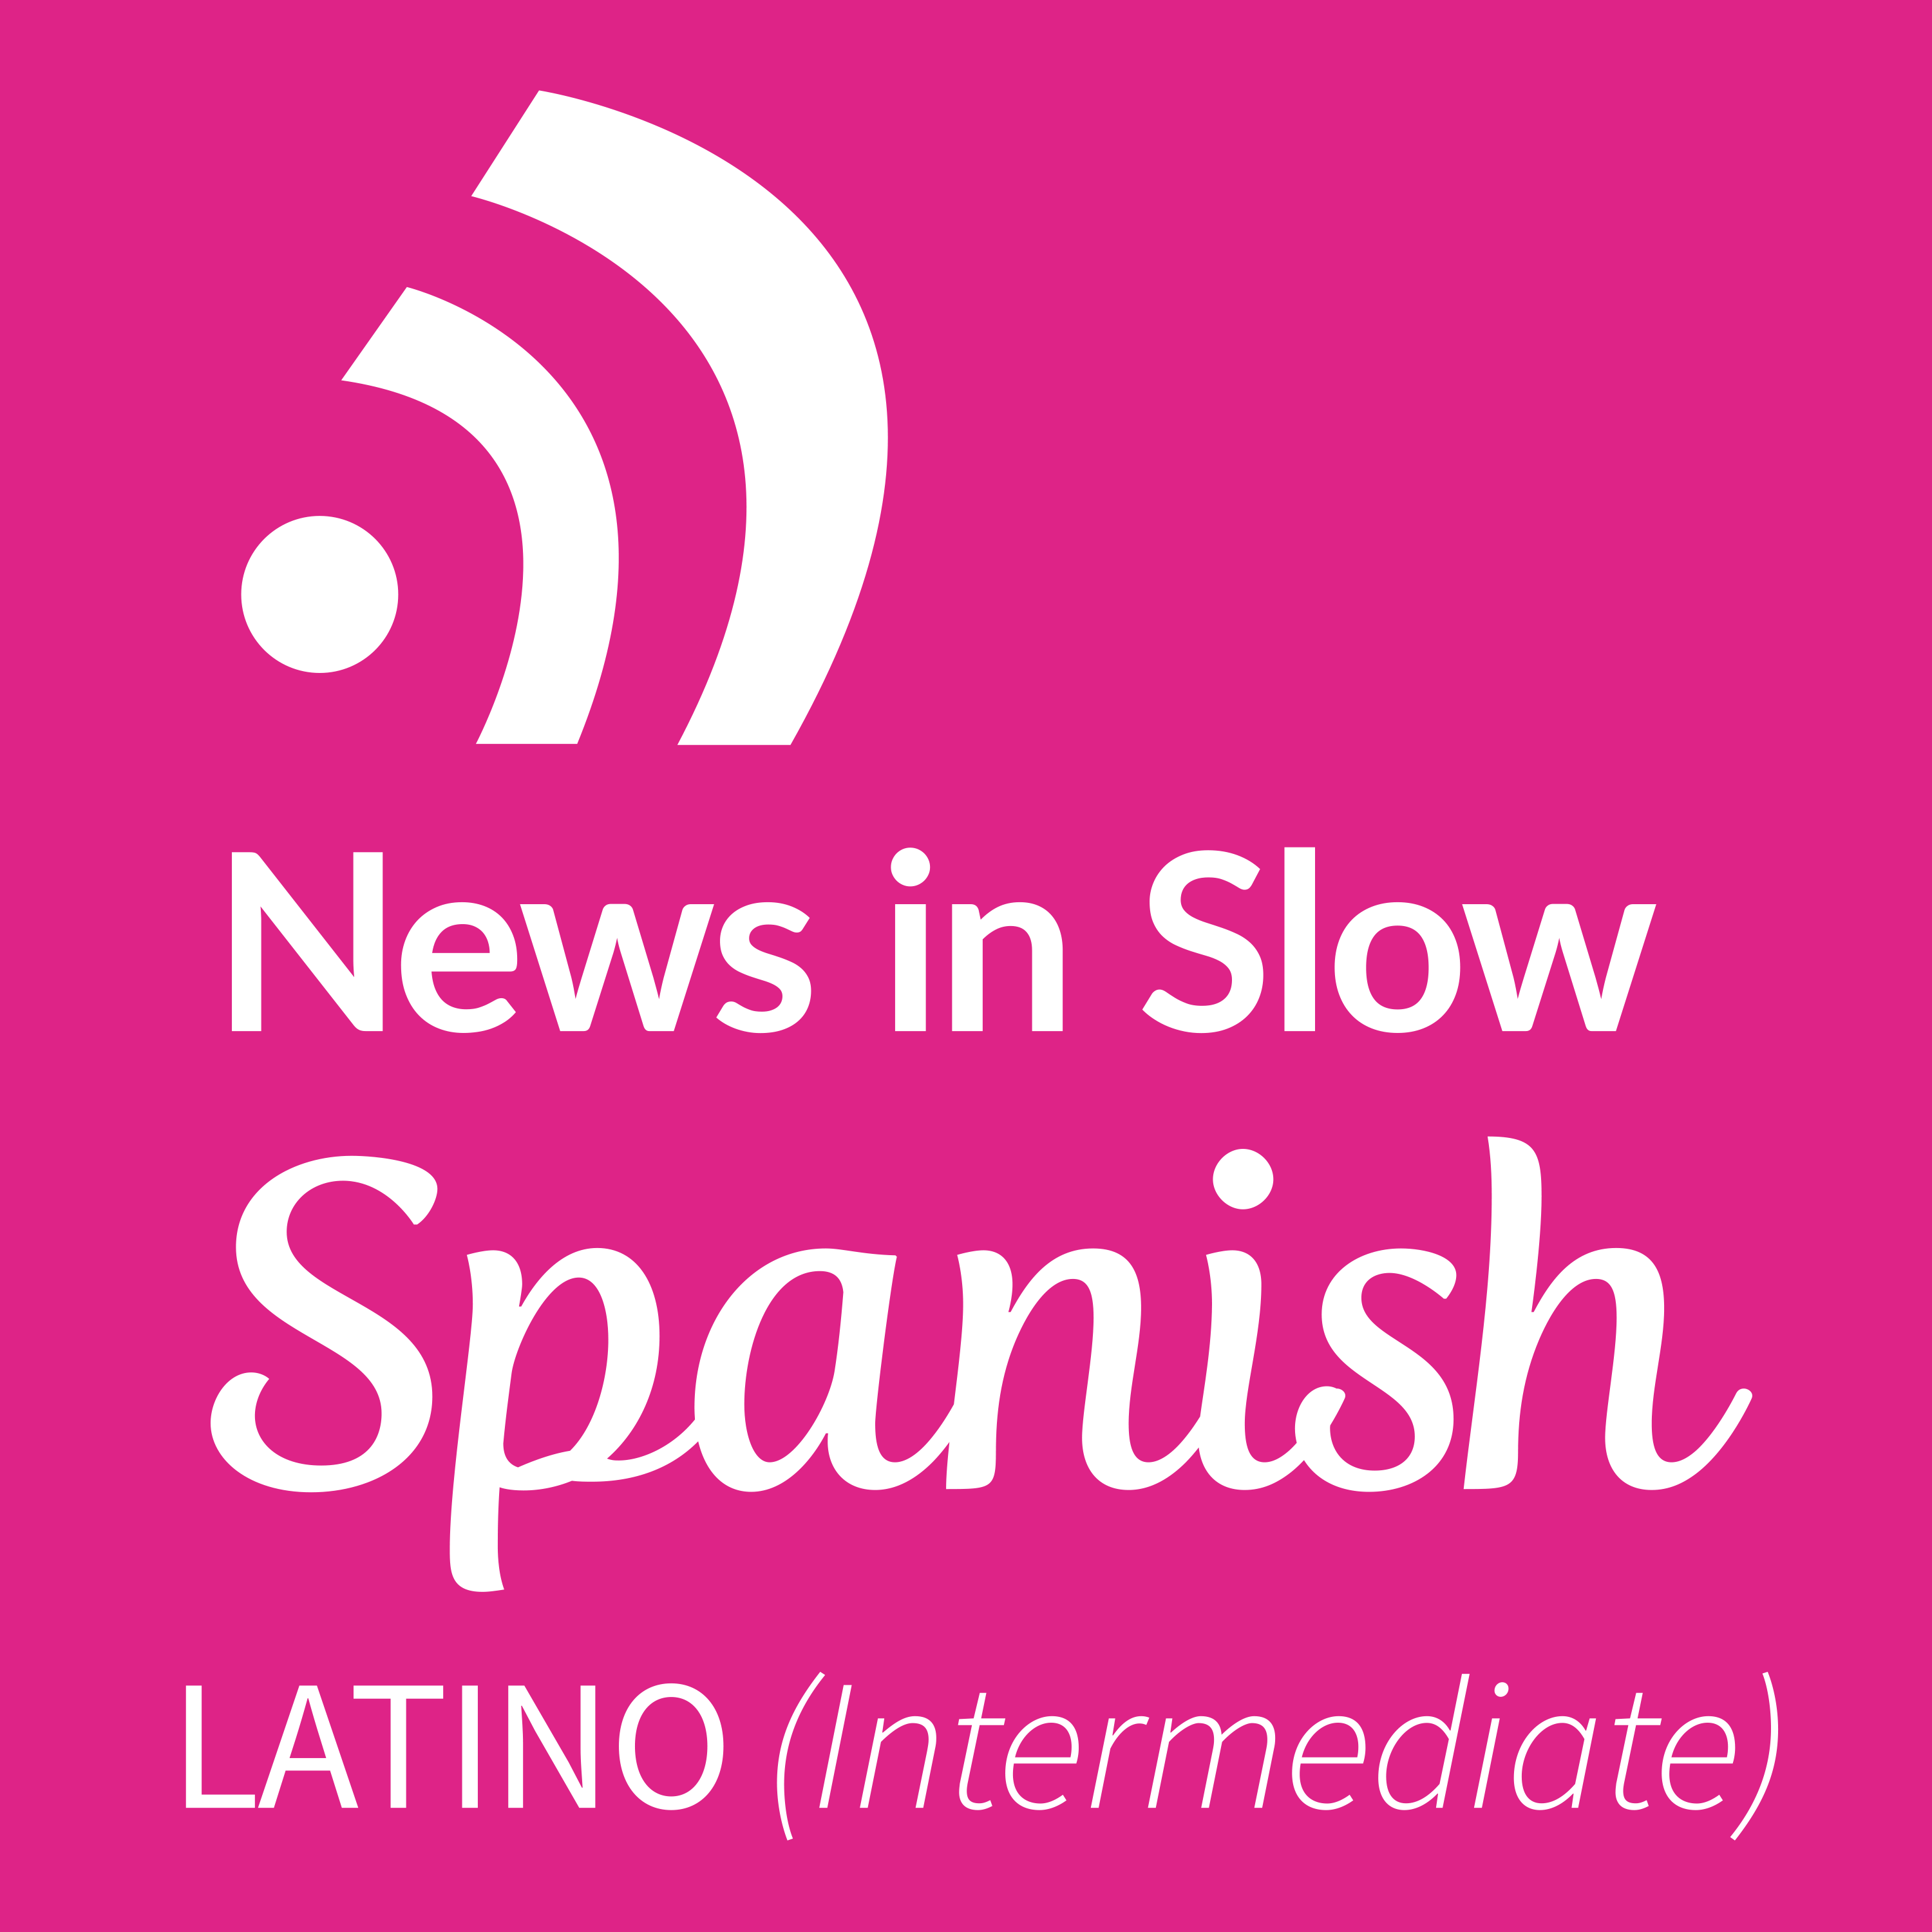 News in Slow Spanish Latino - # 141 - Spanish grammar, news and expressions